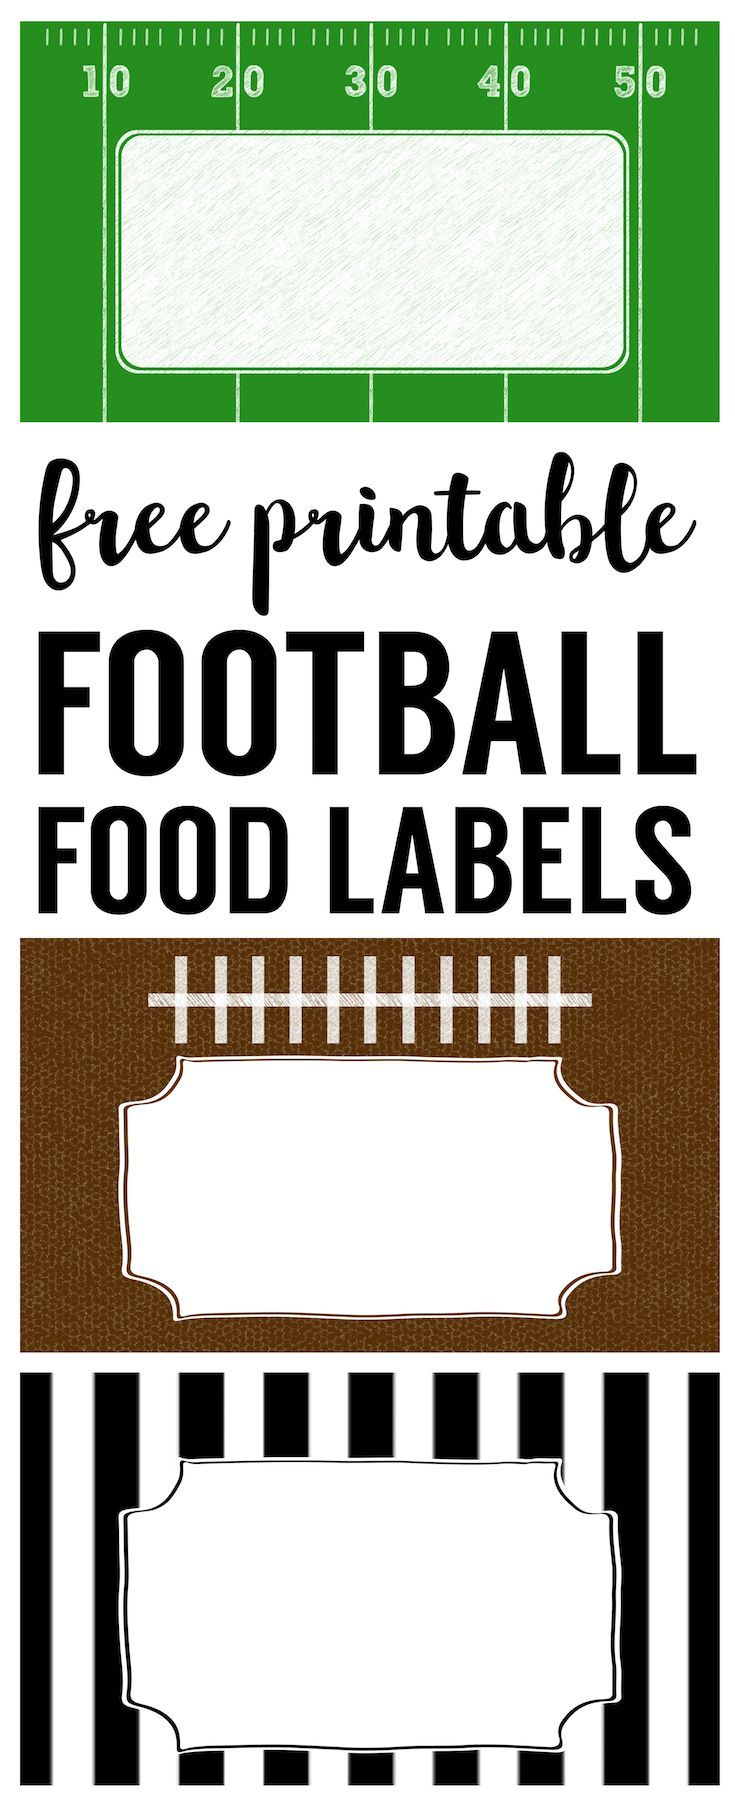 Football Food Labels {Free Printable} – Paper Trail Design